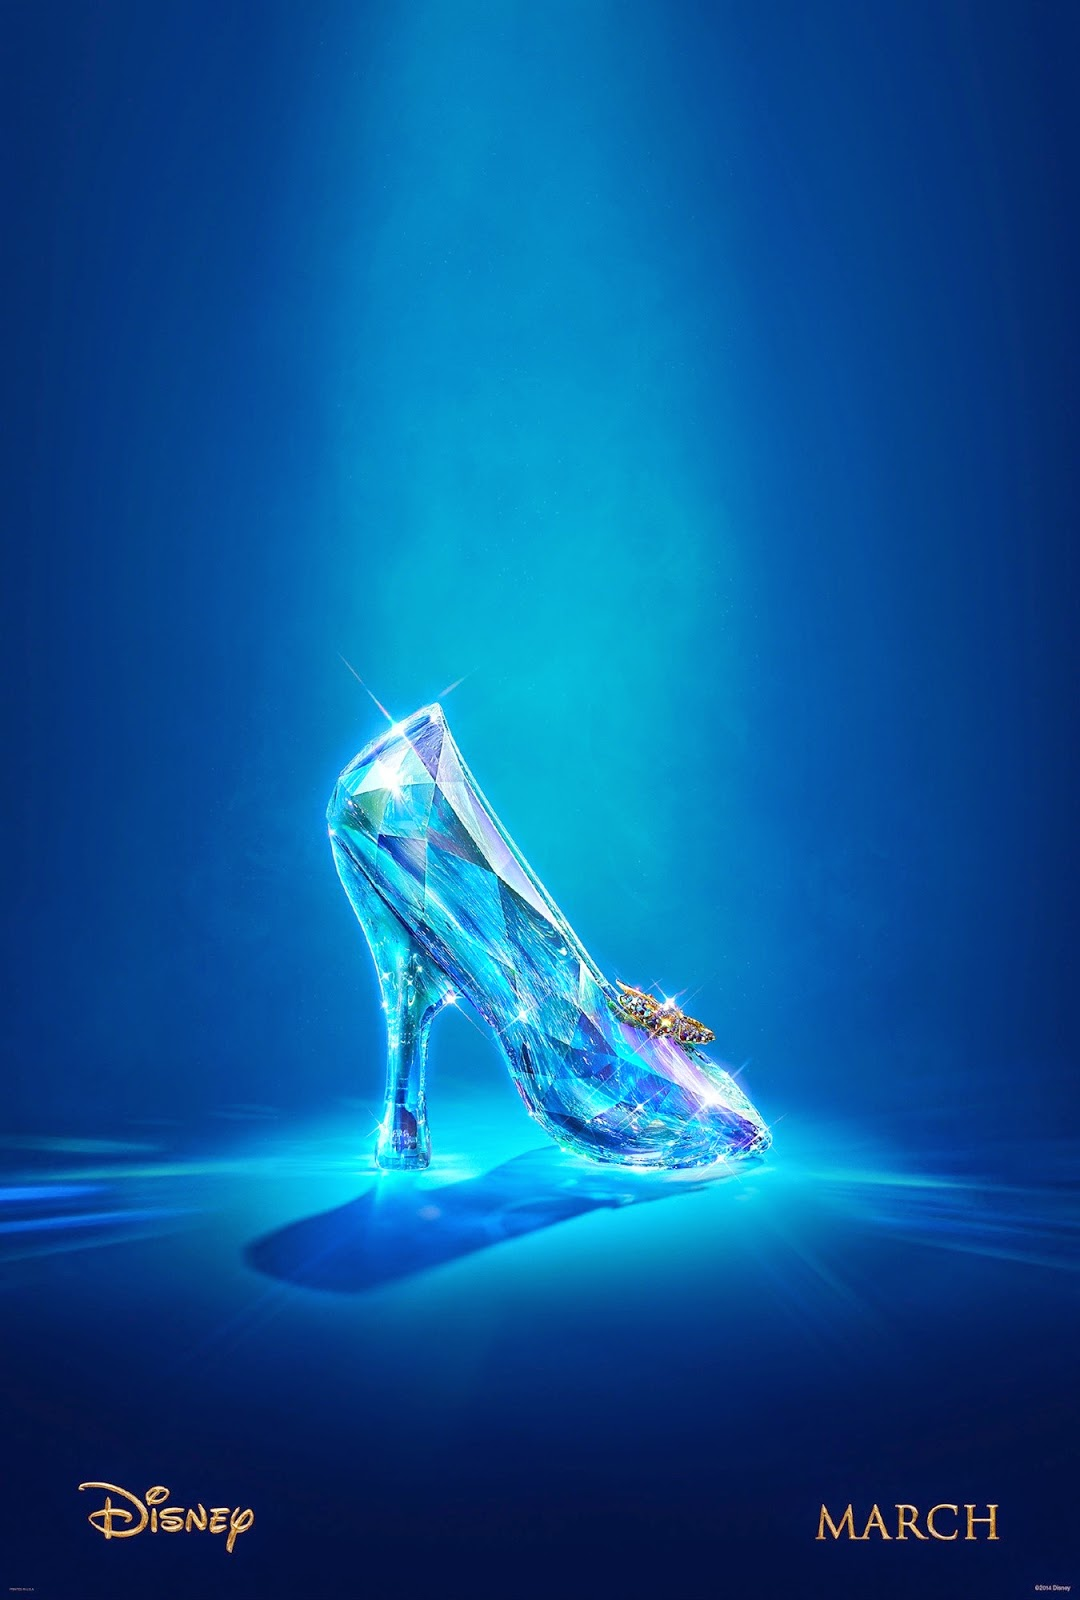 ef22f5ac4 What does the glass slipper symbolize? We know feet symbolize the will (and  shoes, then, reveal to us what kind of will, or what problems with the  will, ...